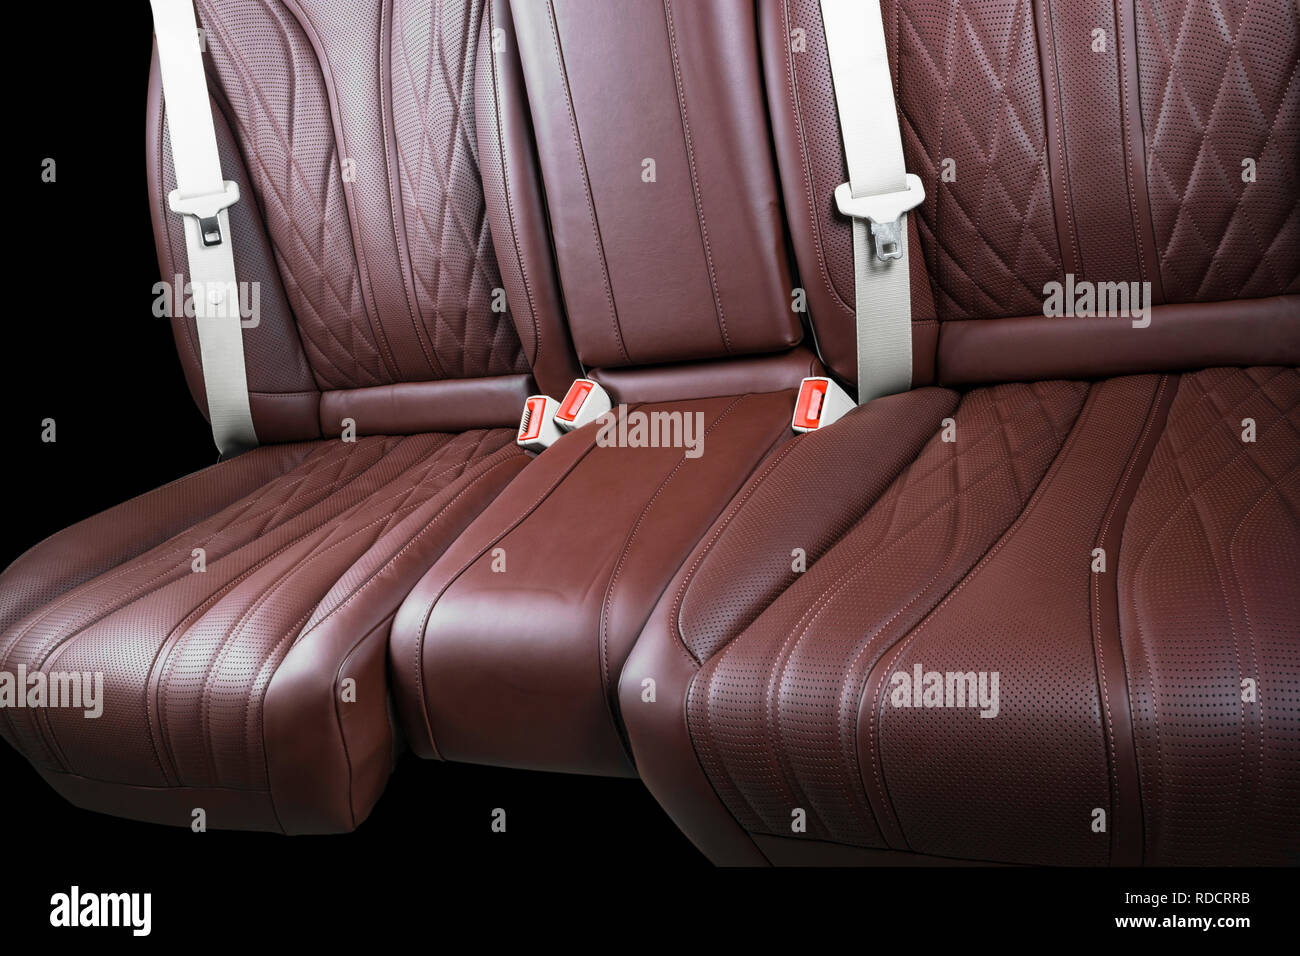 Brown Leather Interior Of The Luxury Modern Car Perforated Leather Comfortable Red Seats With Stitching Isolated On Black Background Modern Car Inte Stock Photo Alamy